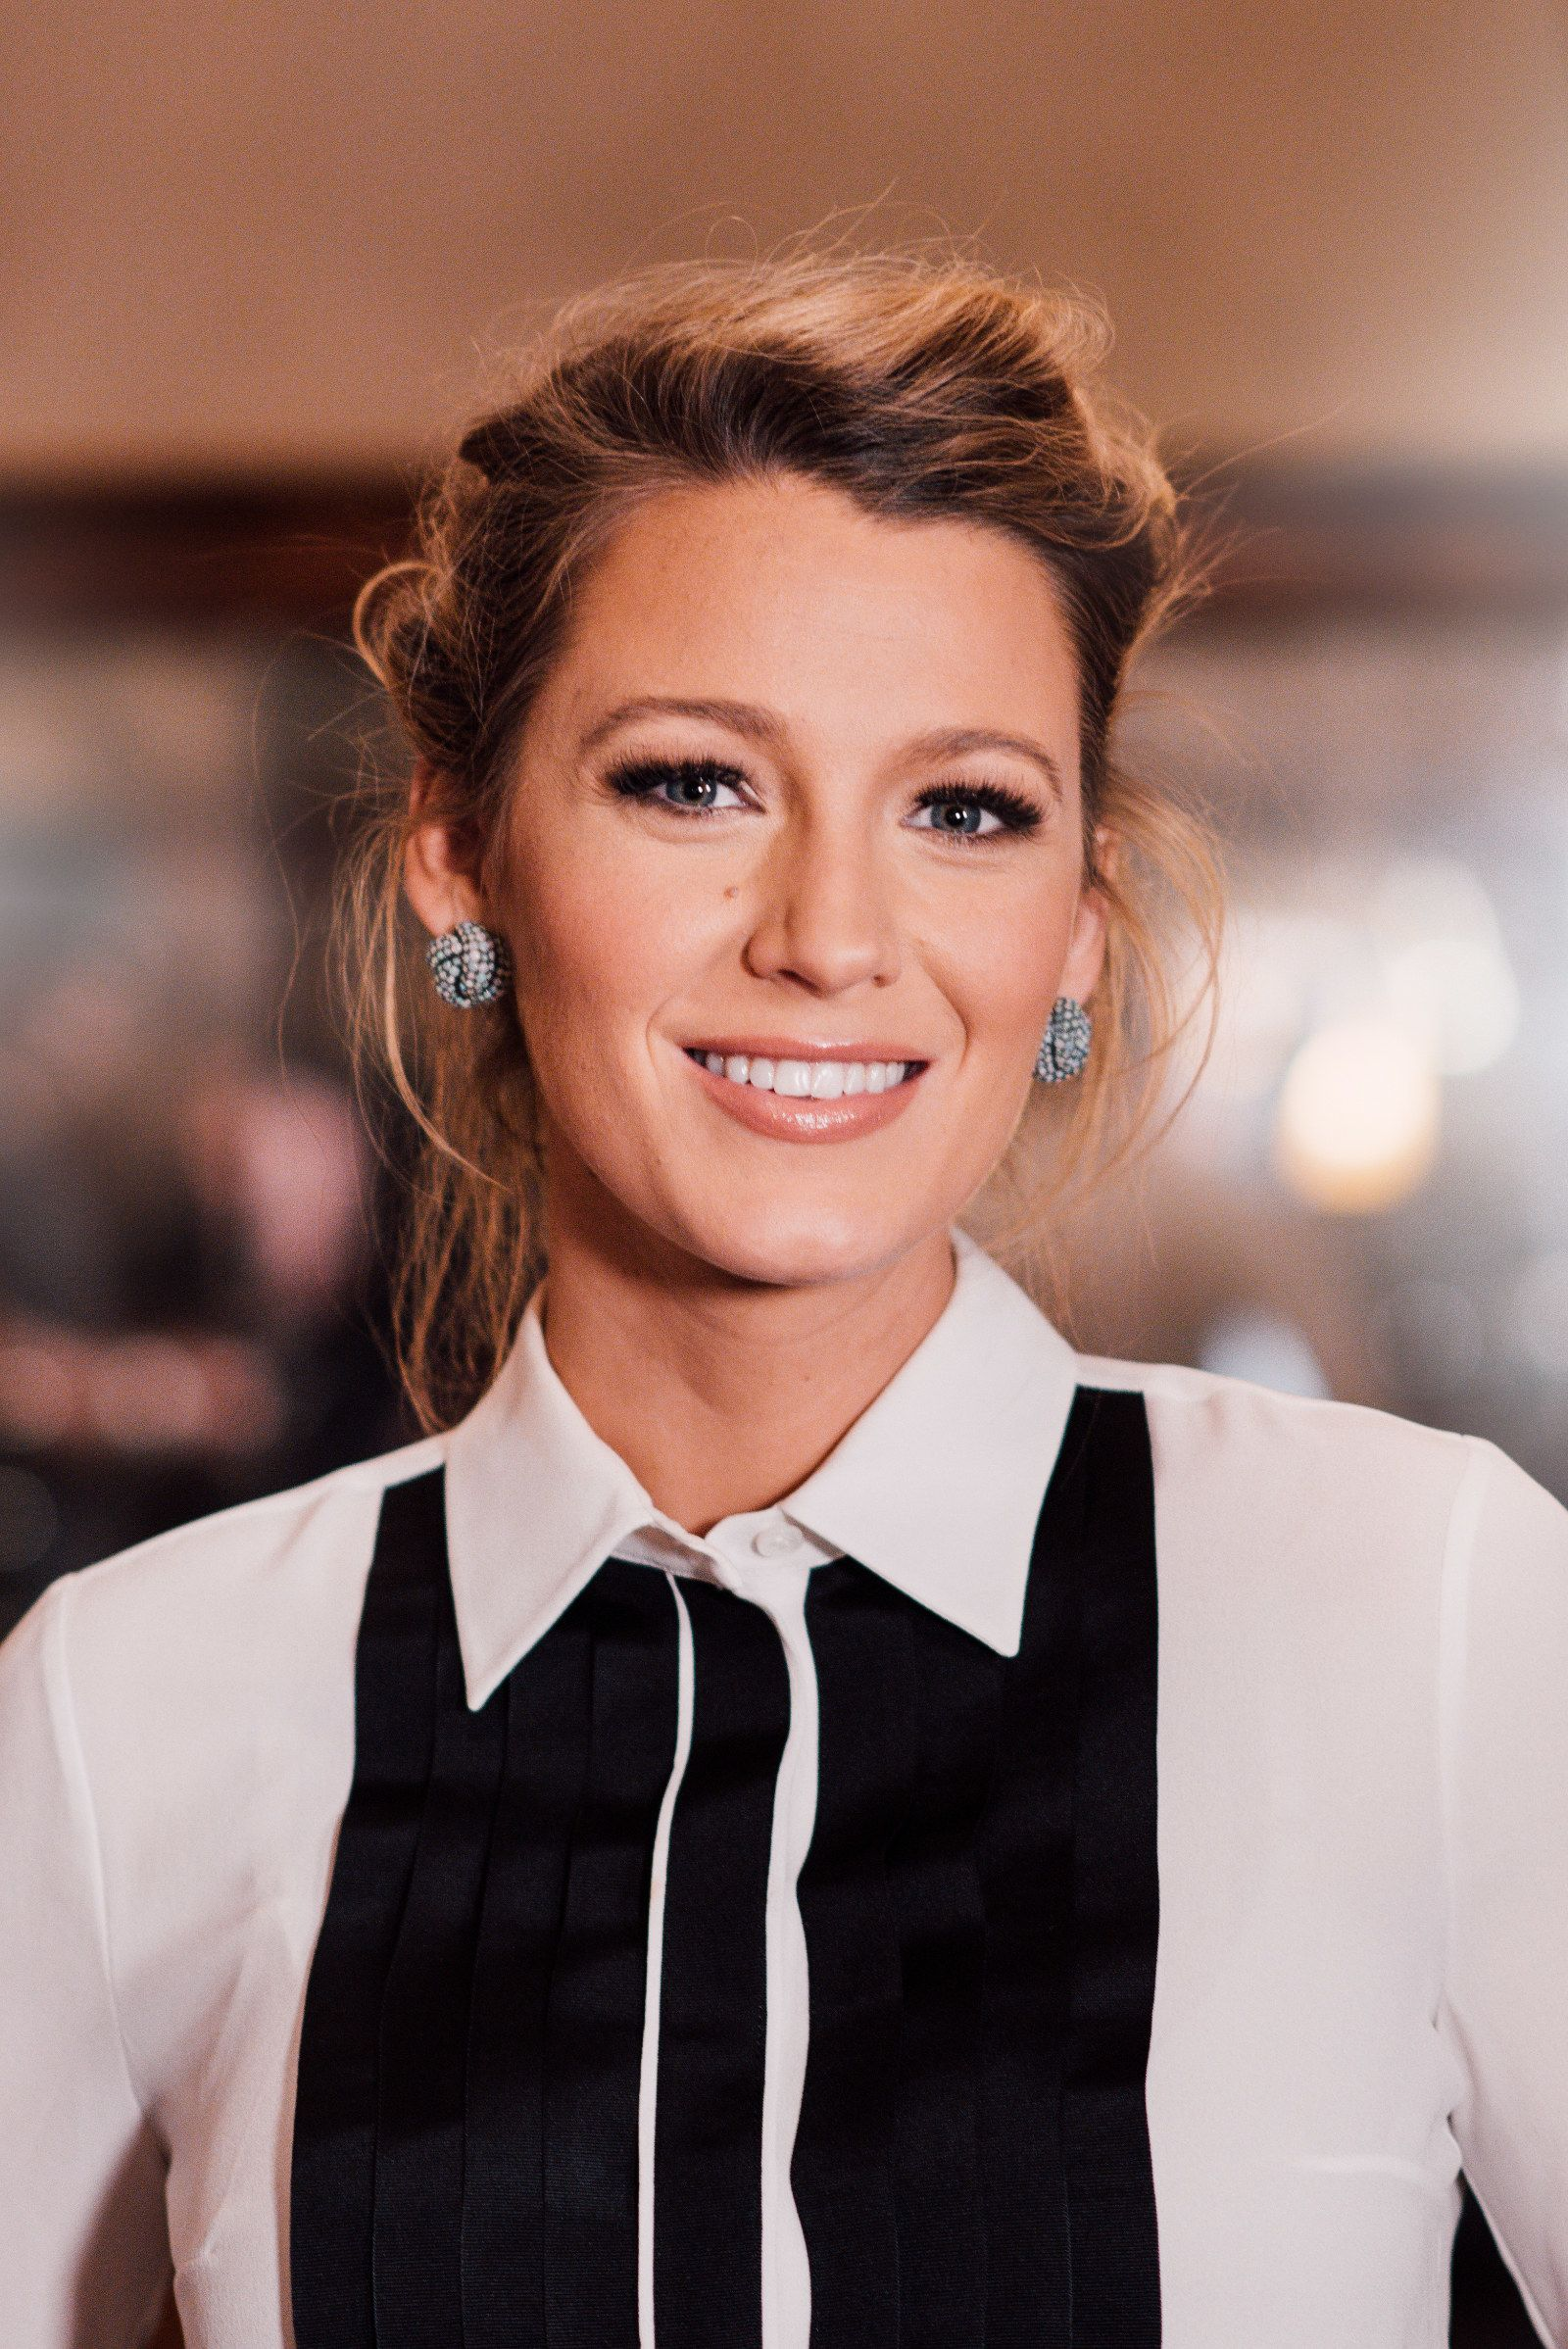 14 Things Youve Always Wanted To Know About Blake Lively